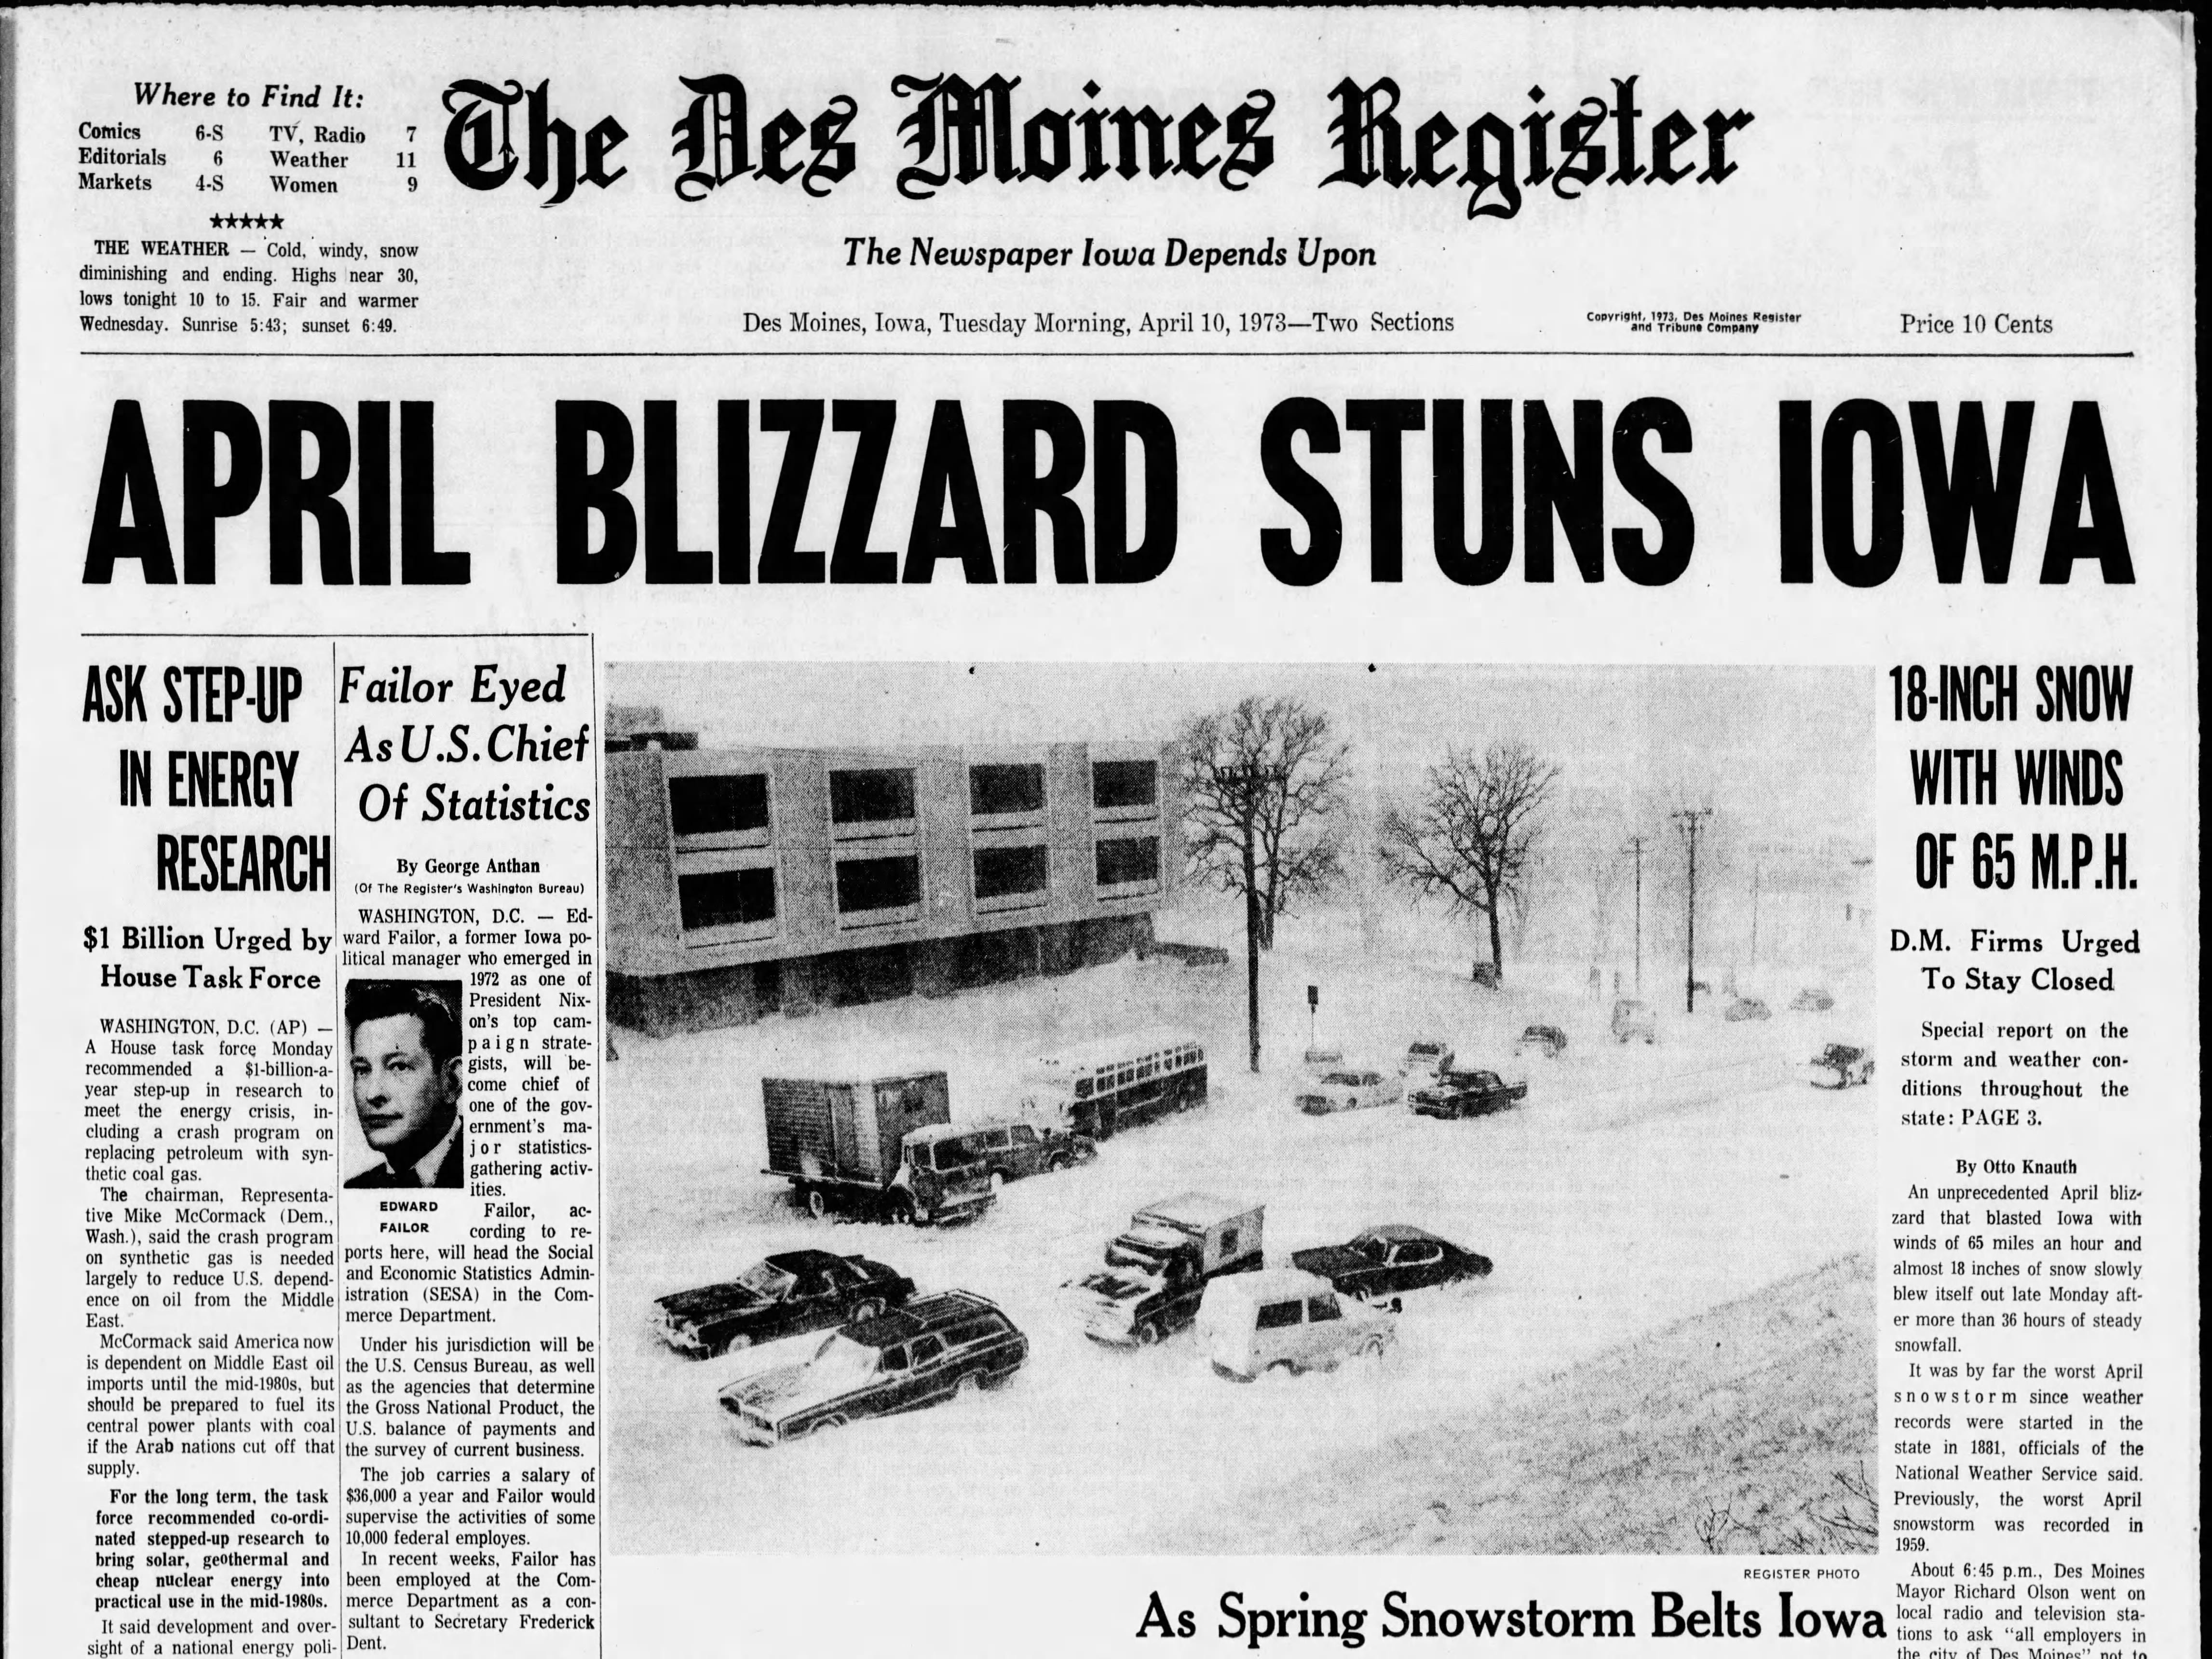 Page 1A of the April 10, 1973 Des Moines Register, with coverage of one of the worst spring blizzards ever recorded in April.